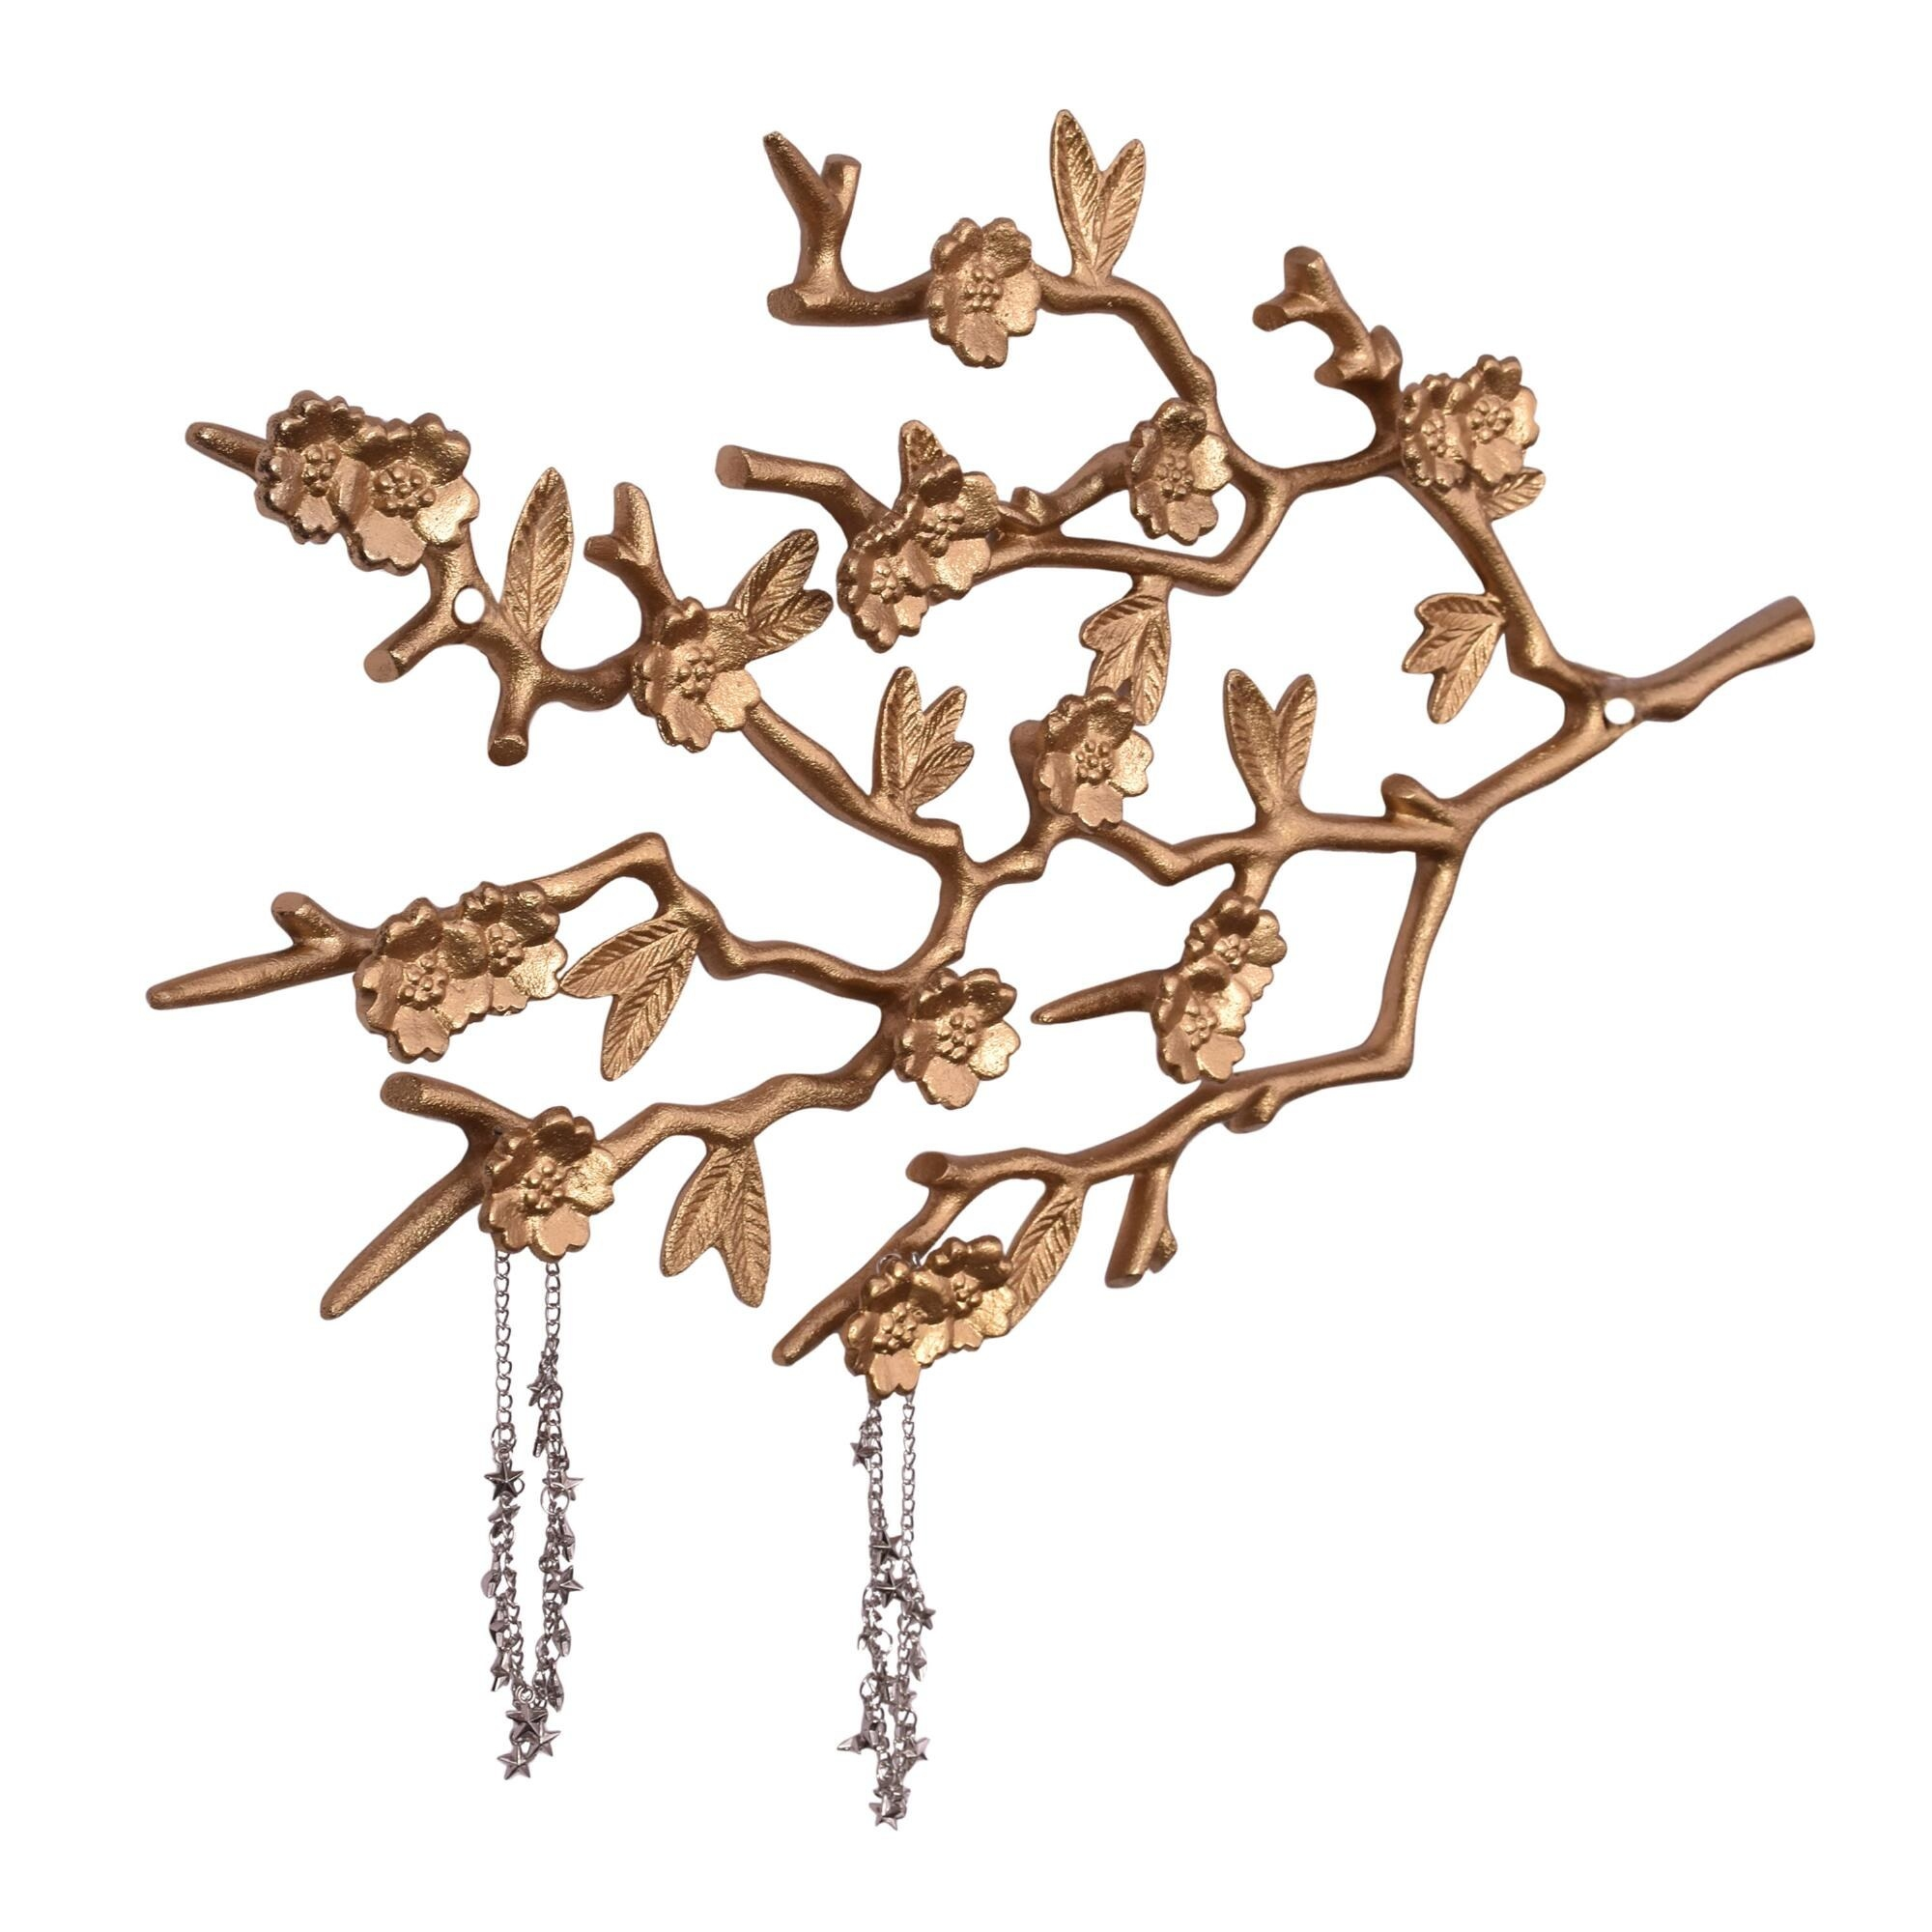 gold tone branch jewelry holder with two bracelets hanging off the branches